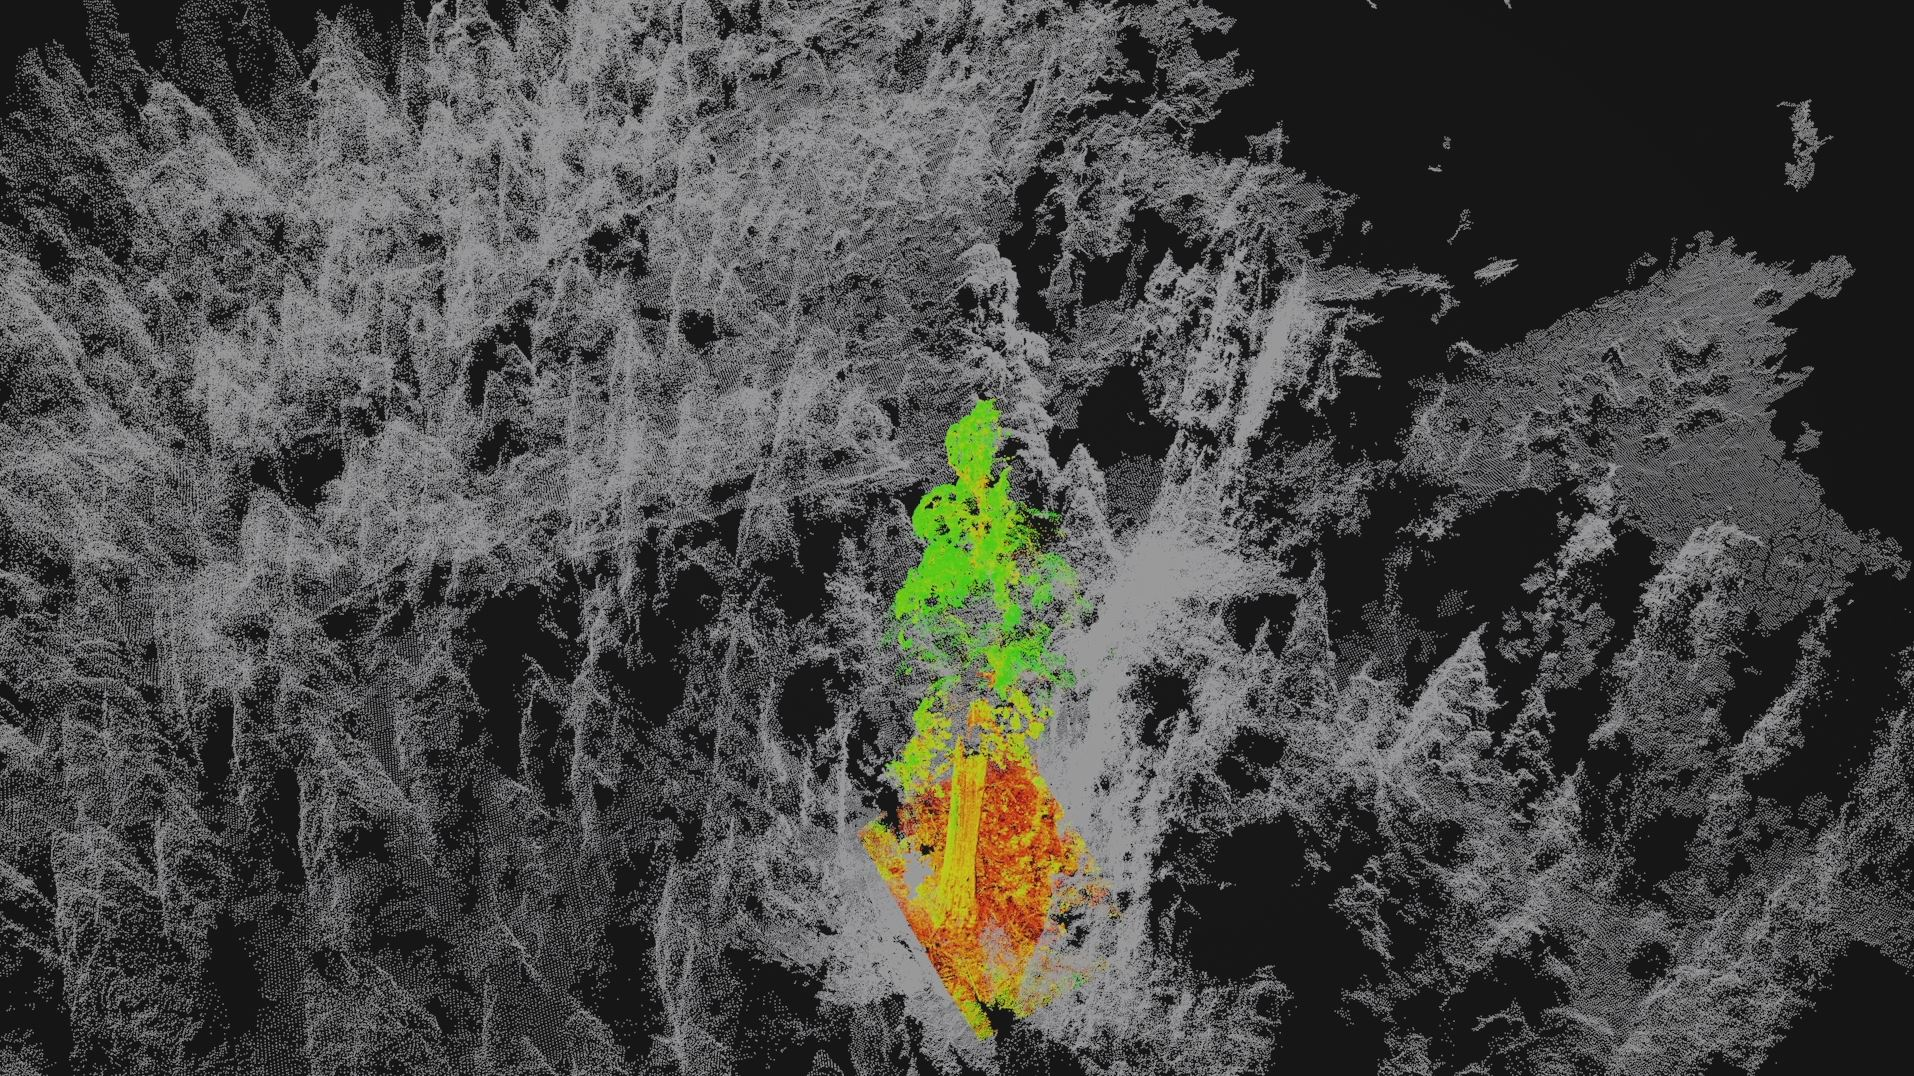 Berkeley project tests tracking imperiled forests with 3D